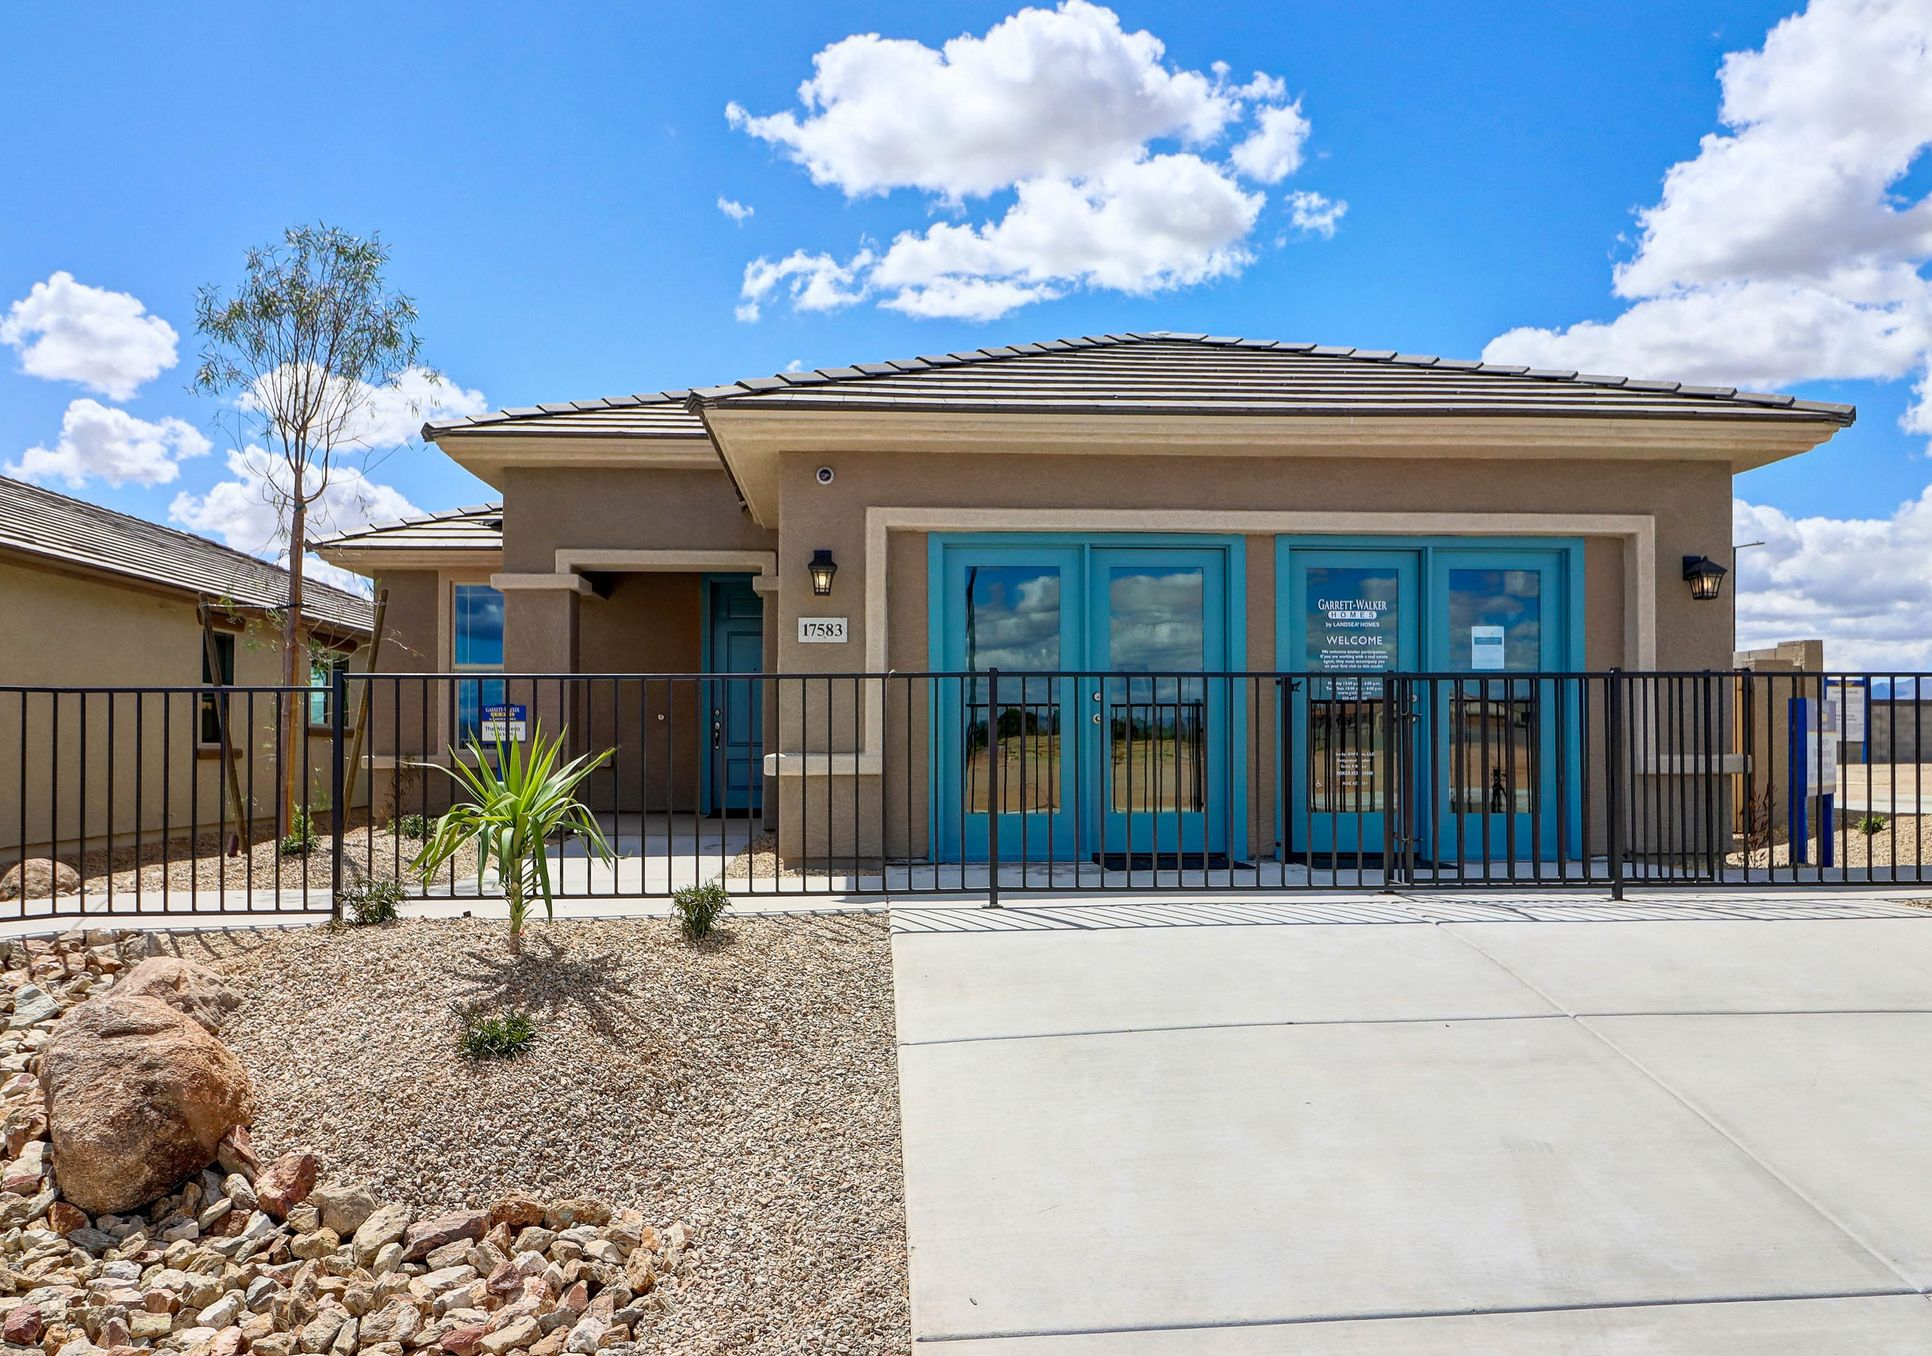 Madera W/ 8' Double Gate:Elevation